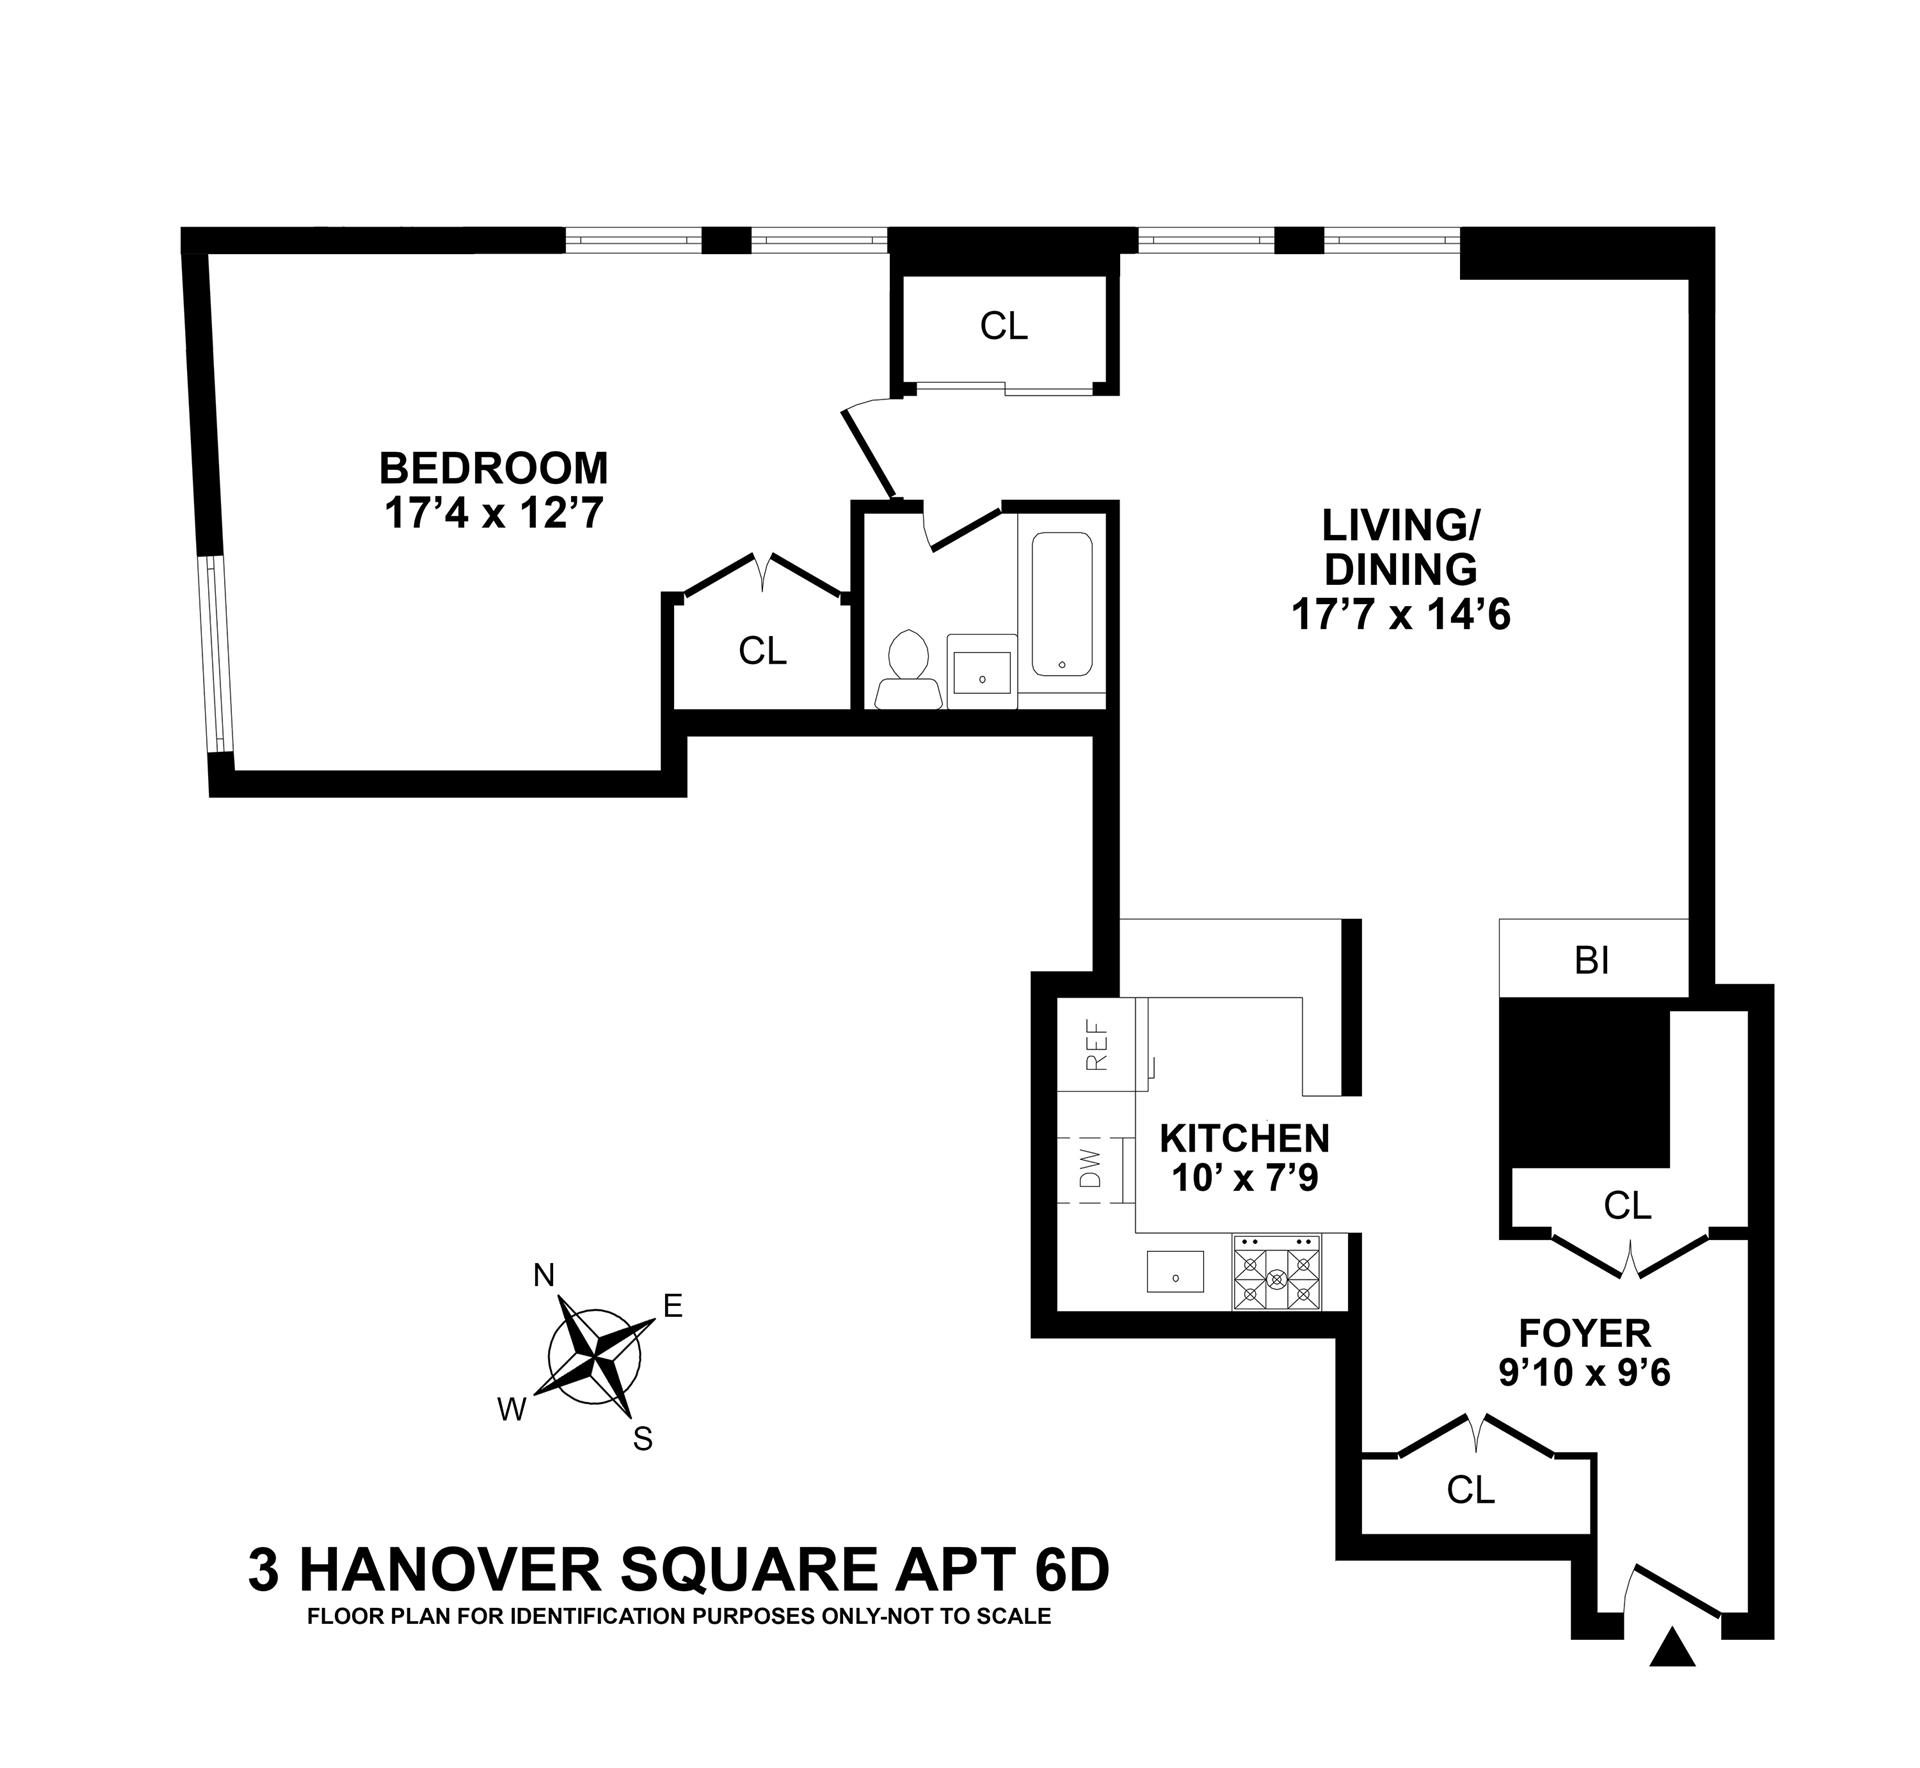 Floor plan of 3 Hanover Square, 6D - Financial District, New York